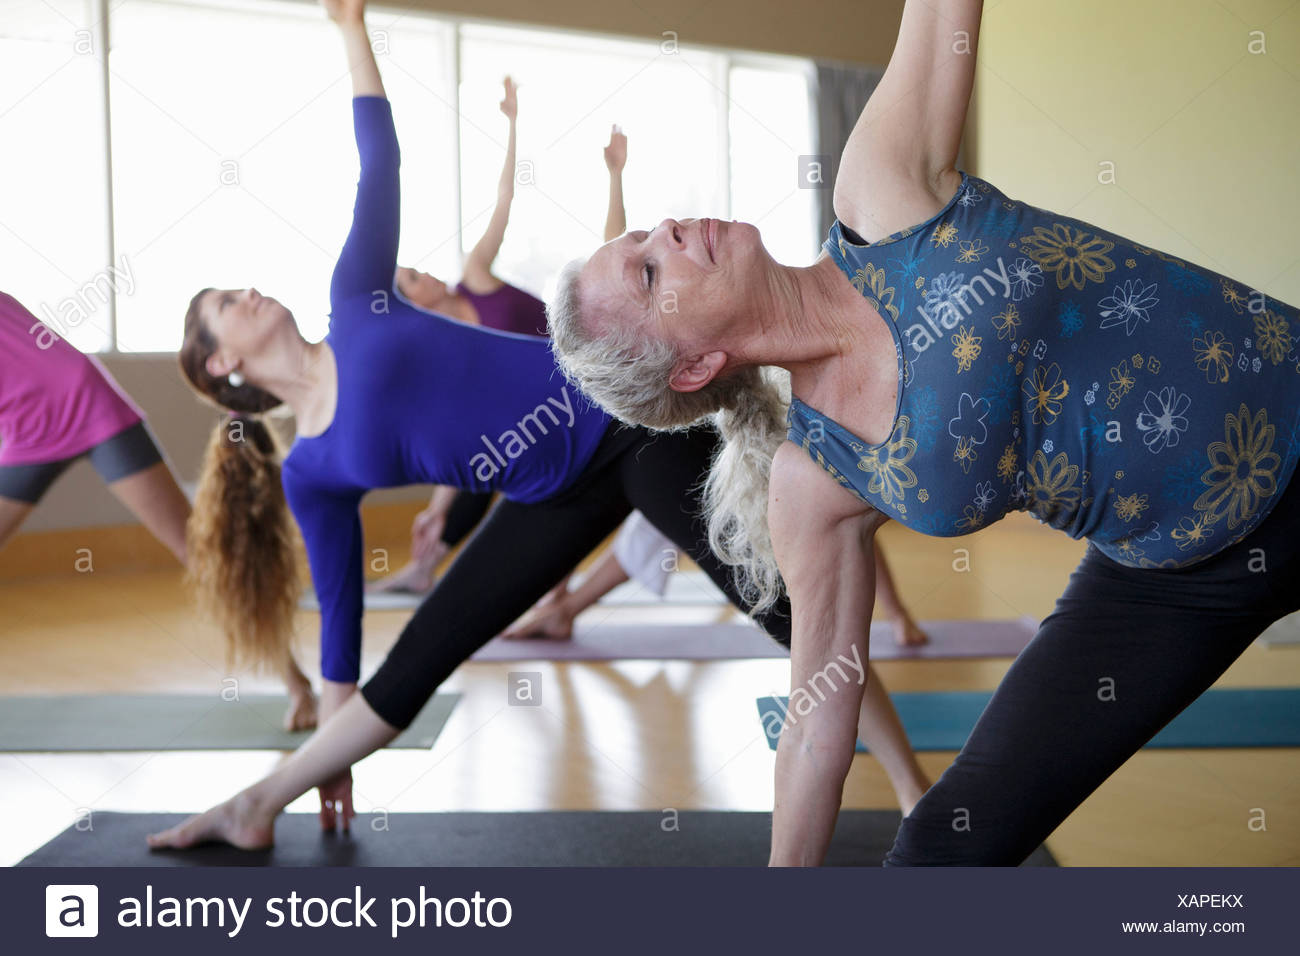 Females stretching yoga class - Stock Image